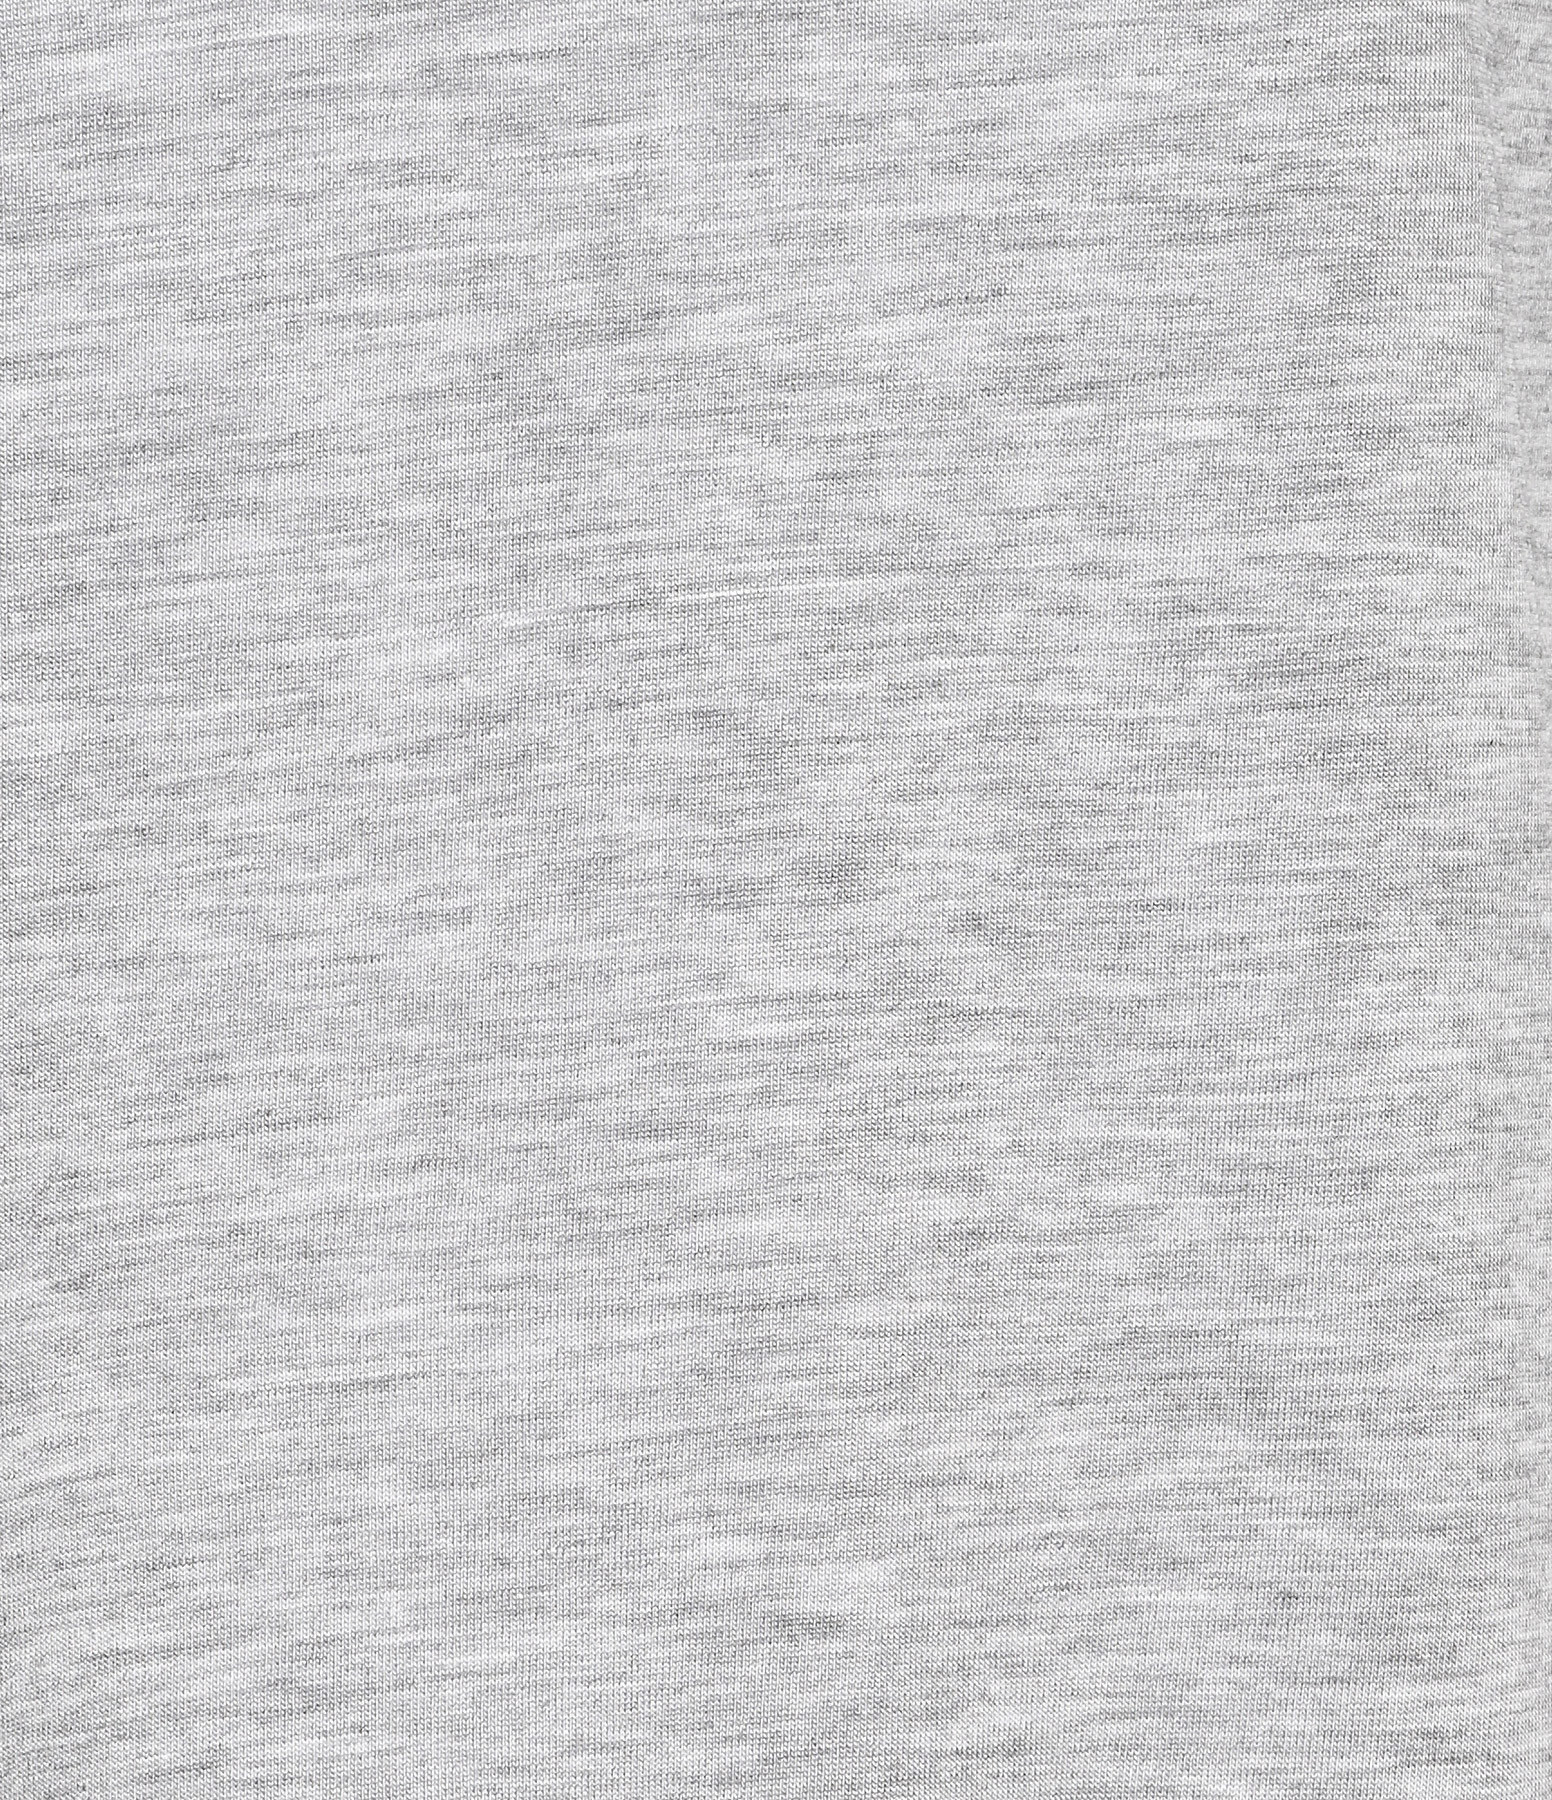 JEANNE VOULAND - Tee-shirt Bacha Lyocell Gris Chiné